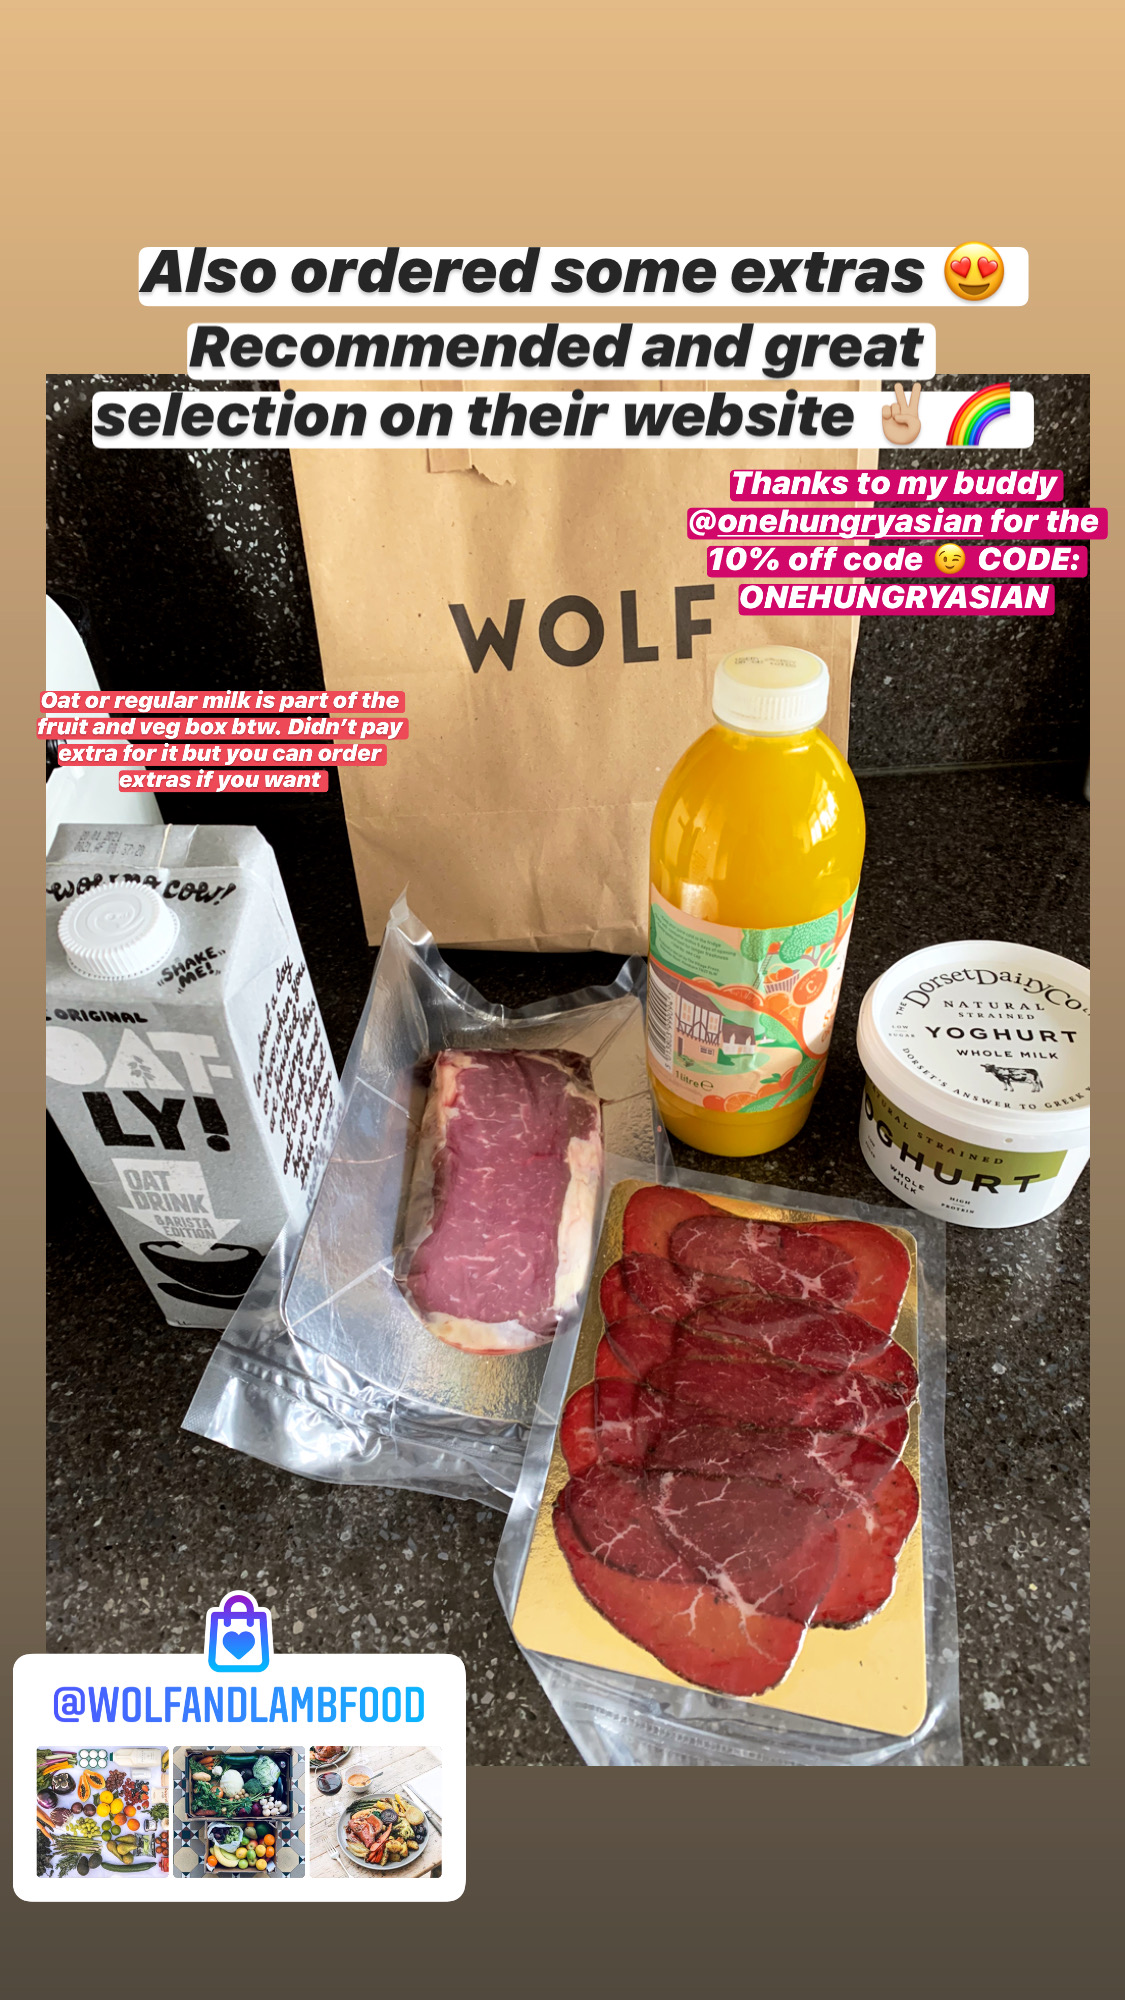 wolf and lamb pantry selection home delivery London during covid 19